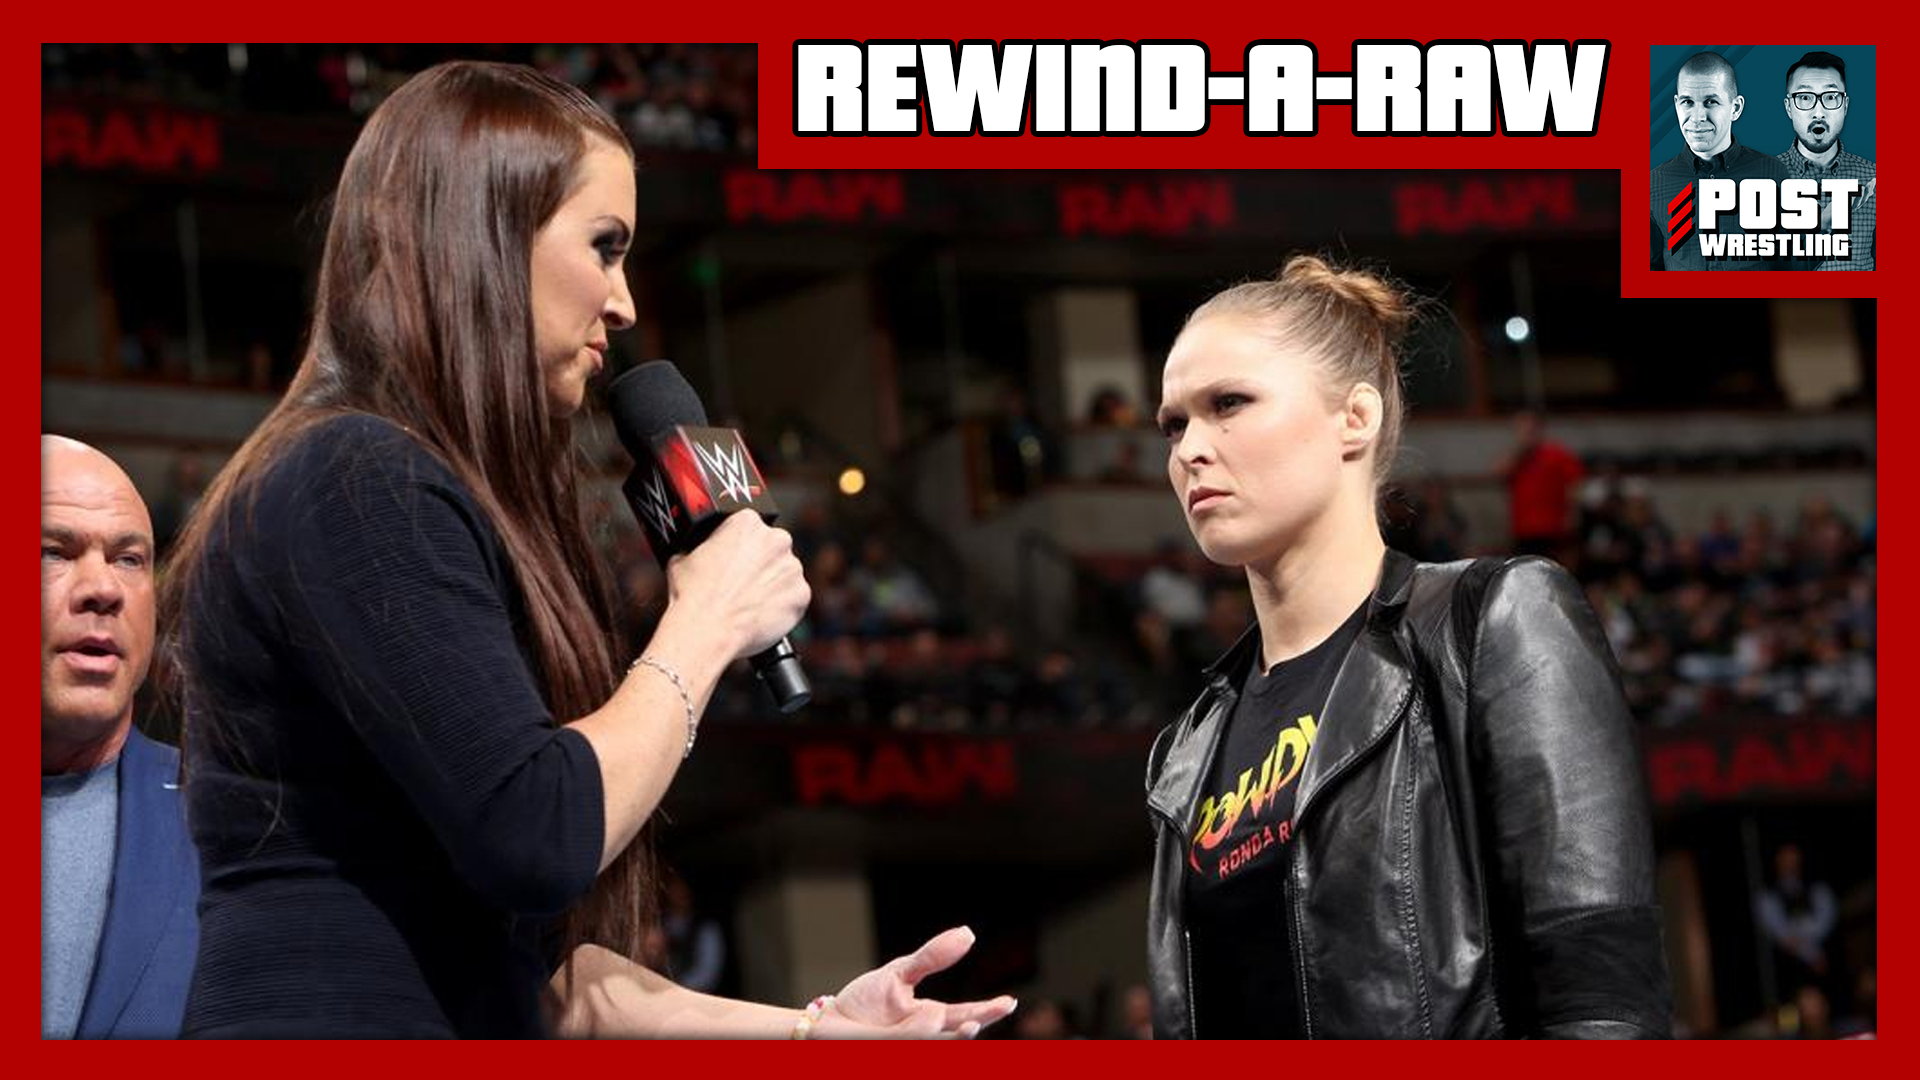 REWIND-A-RAW 2/26/18: Ronda vs. Steph, Reigns Cuts Great Promo, John Cena to SmackDown